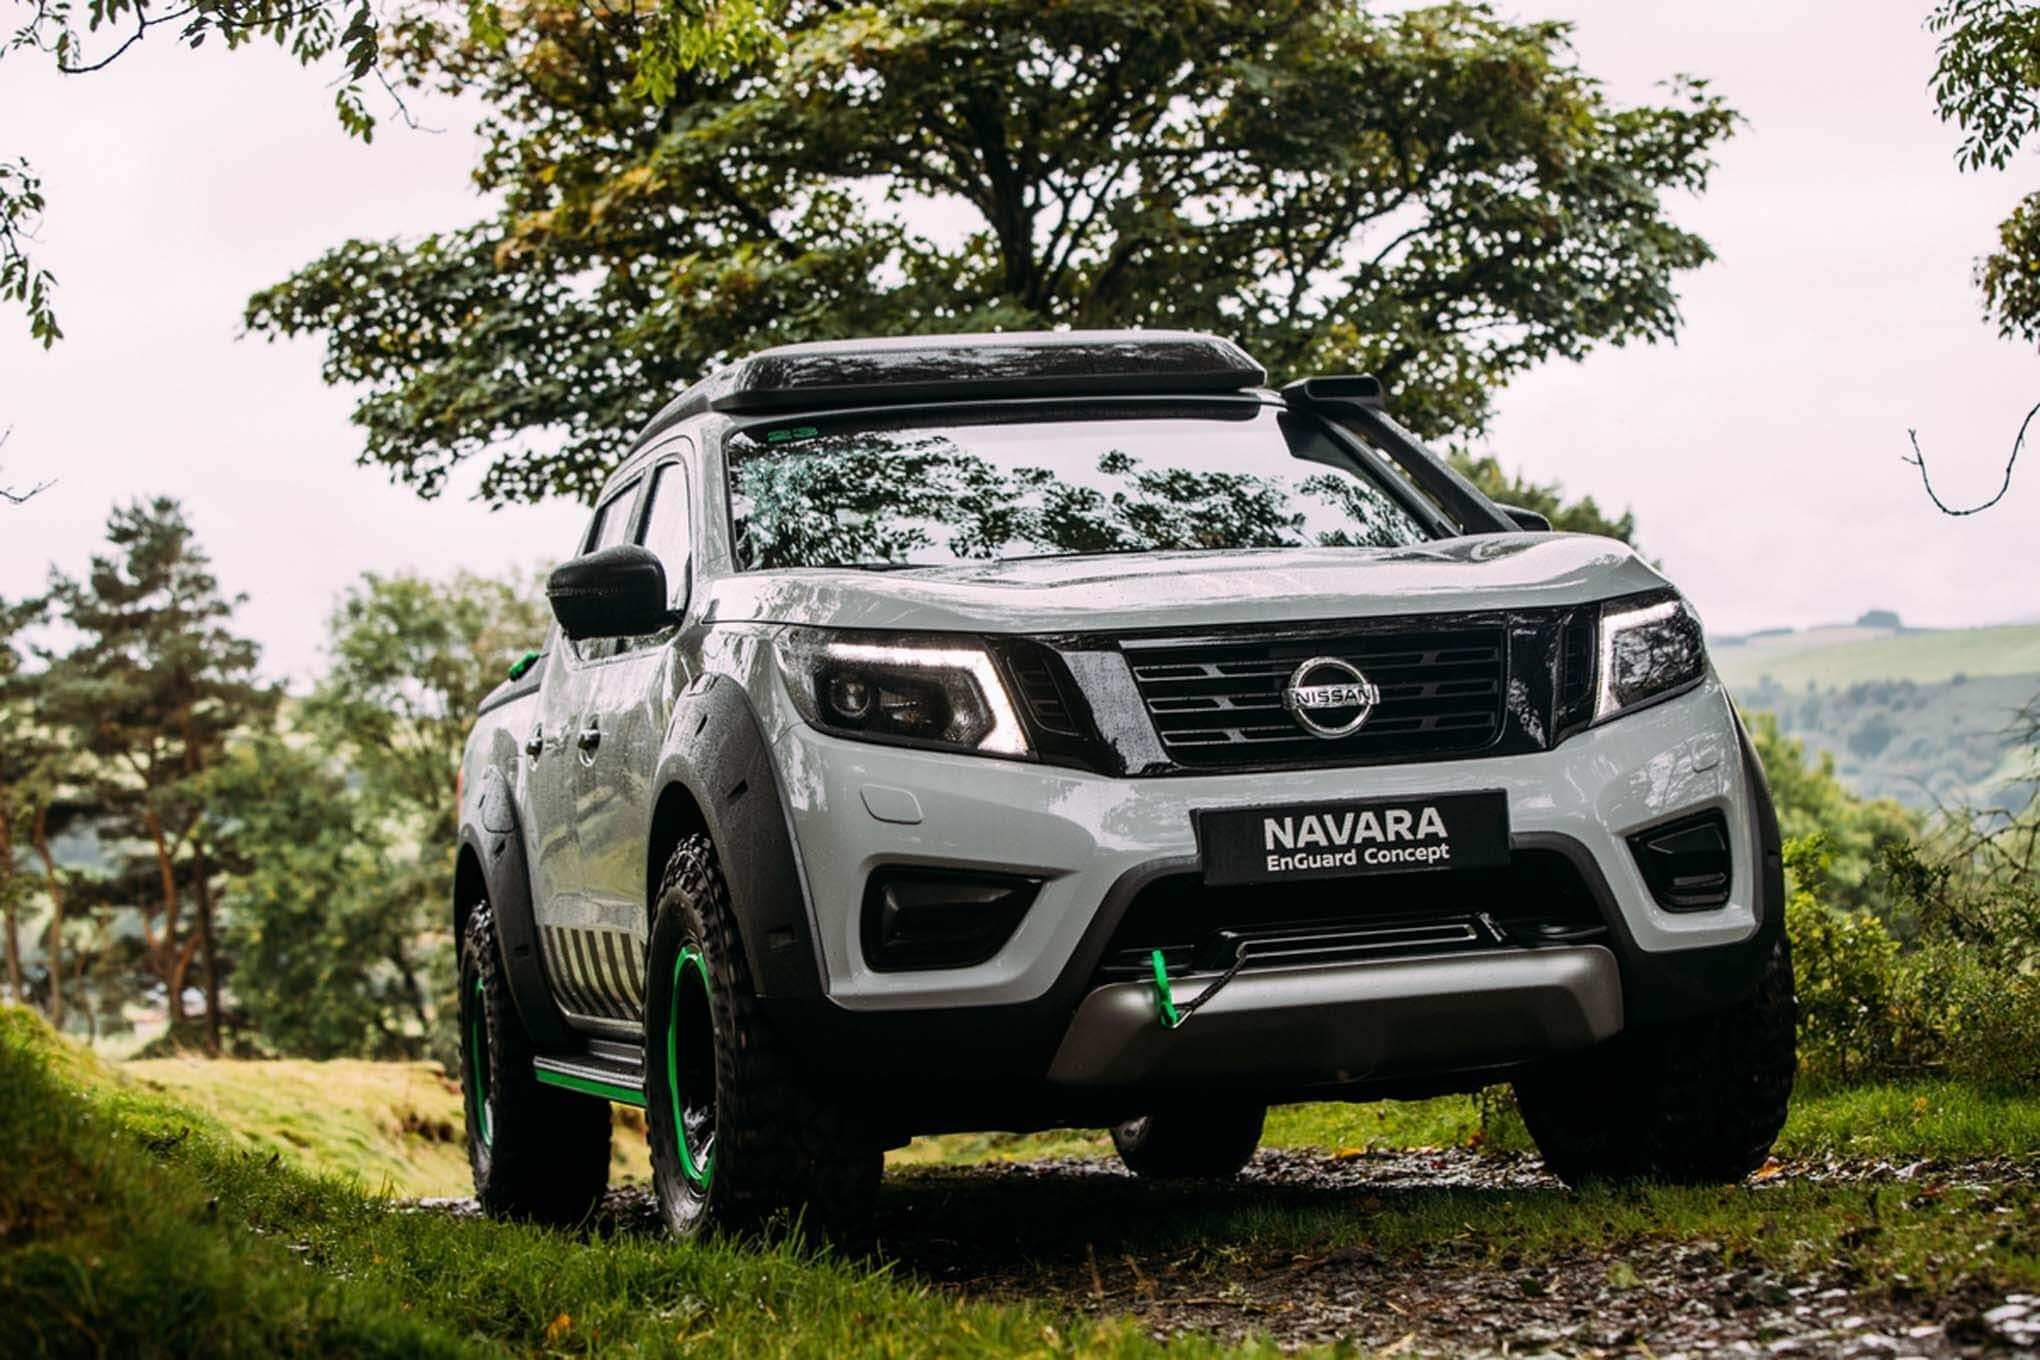 42 The Best 2020 Nissan Navara Price And Review